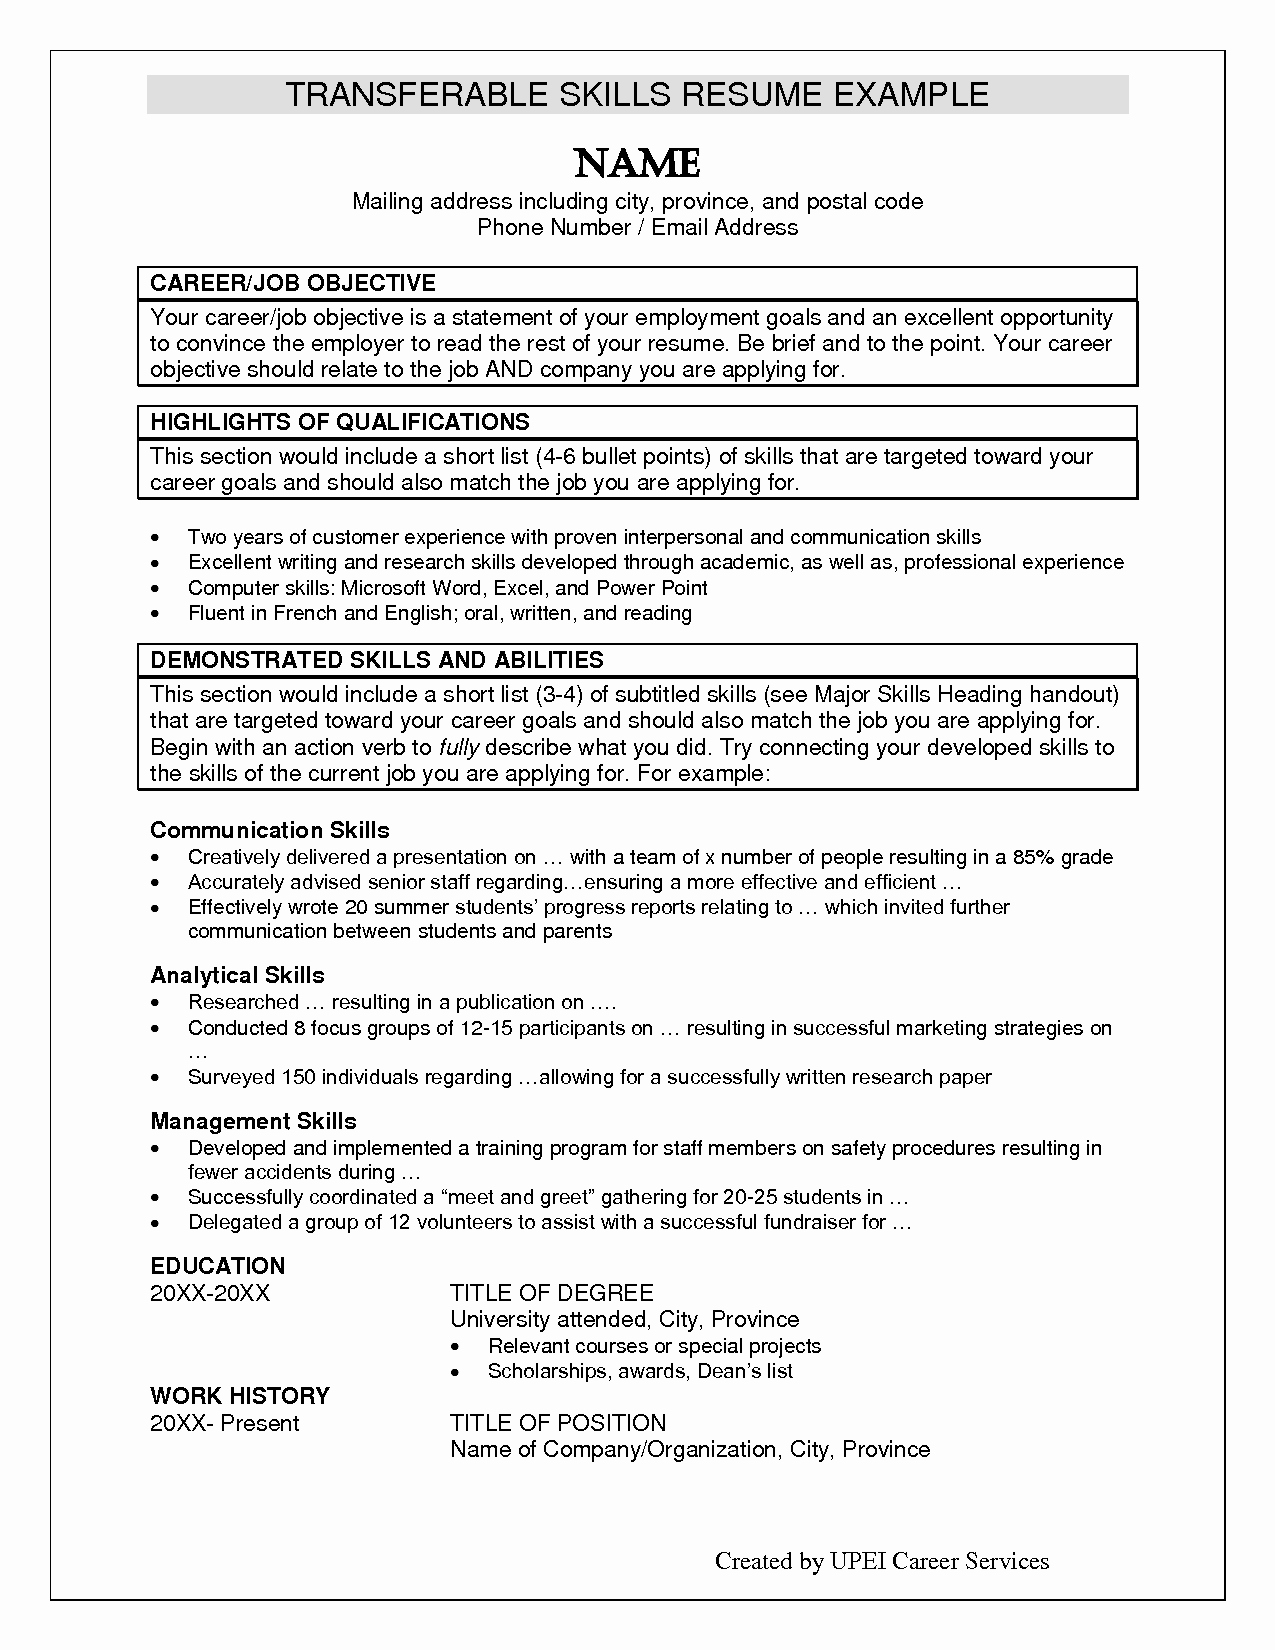 Resume Examples Additional Skills Section Job Pics and